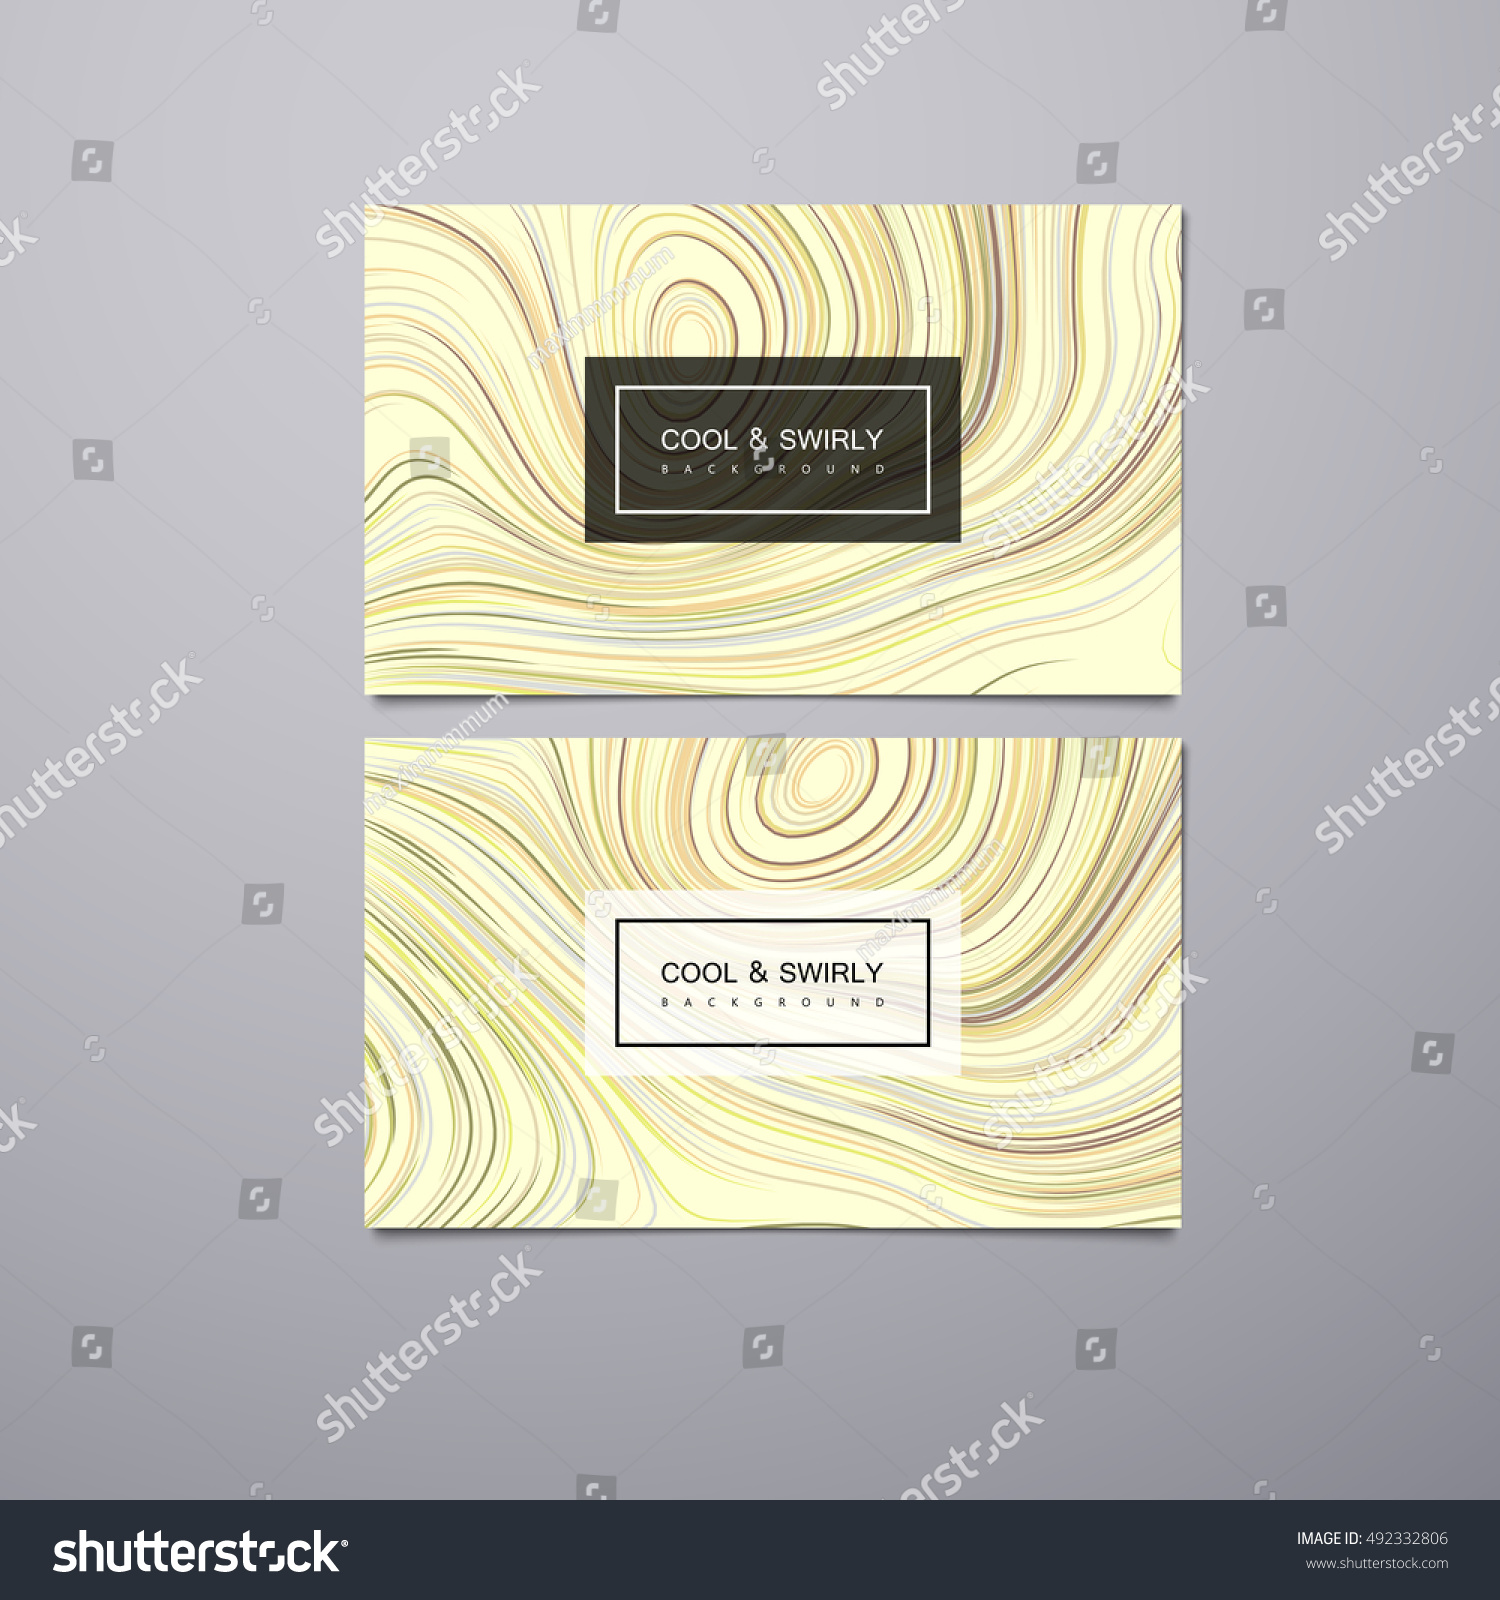 Greeting Invitation Business Gift Cards Design Stock Vector ...